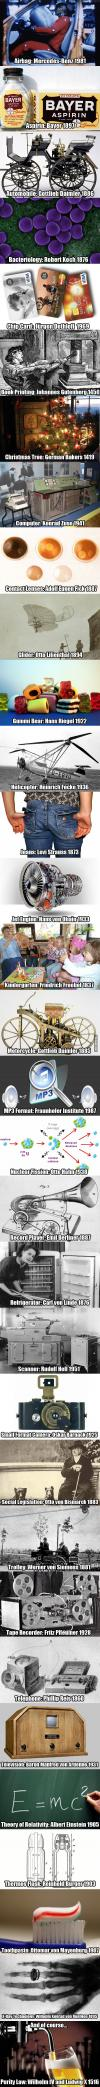 here are some german inventions and discoveries... you're welcome!